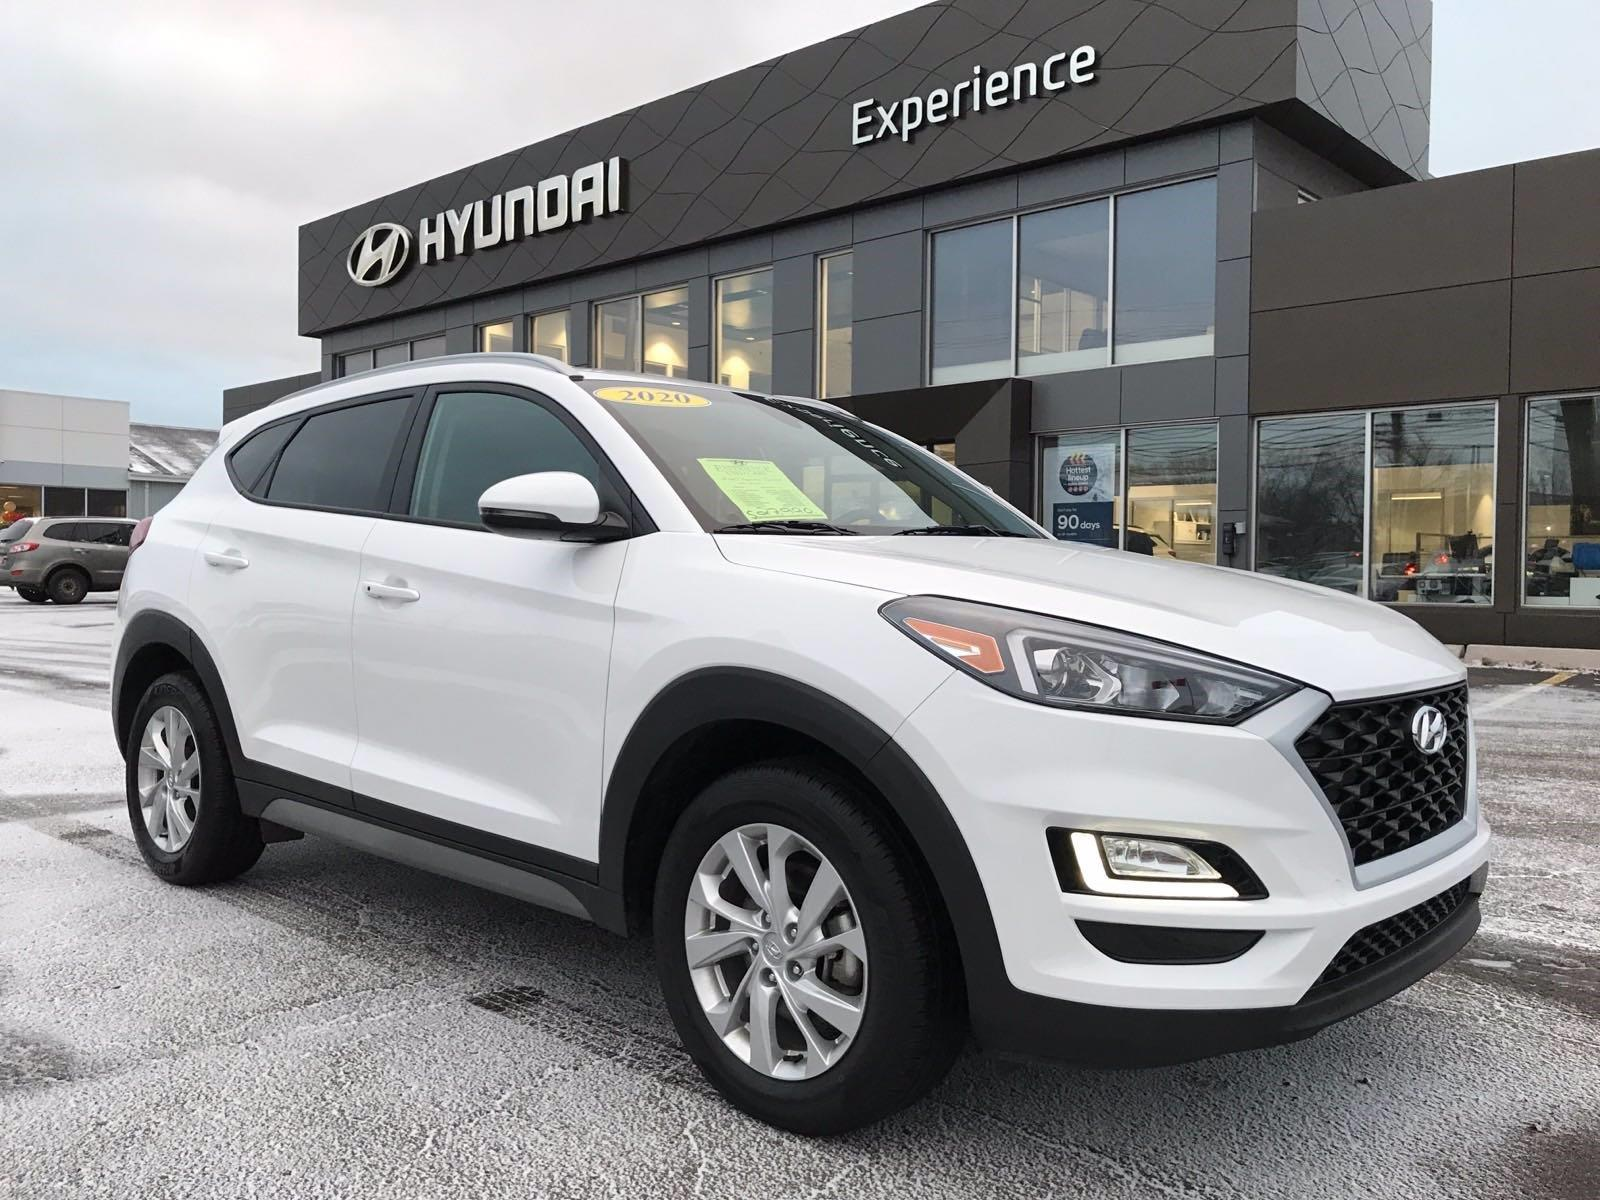 2020 Hyundai Tucson Preferred - 18,119km